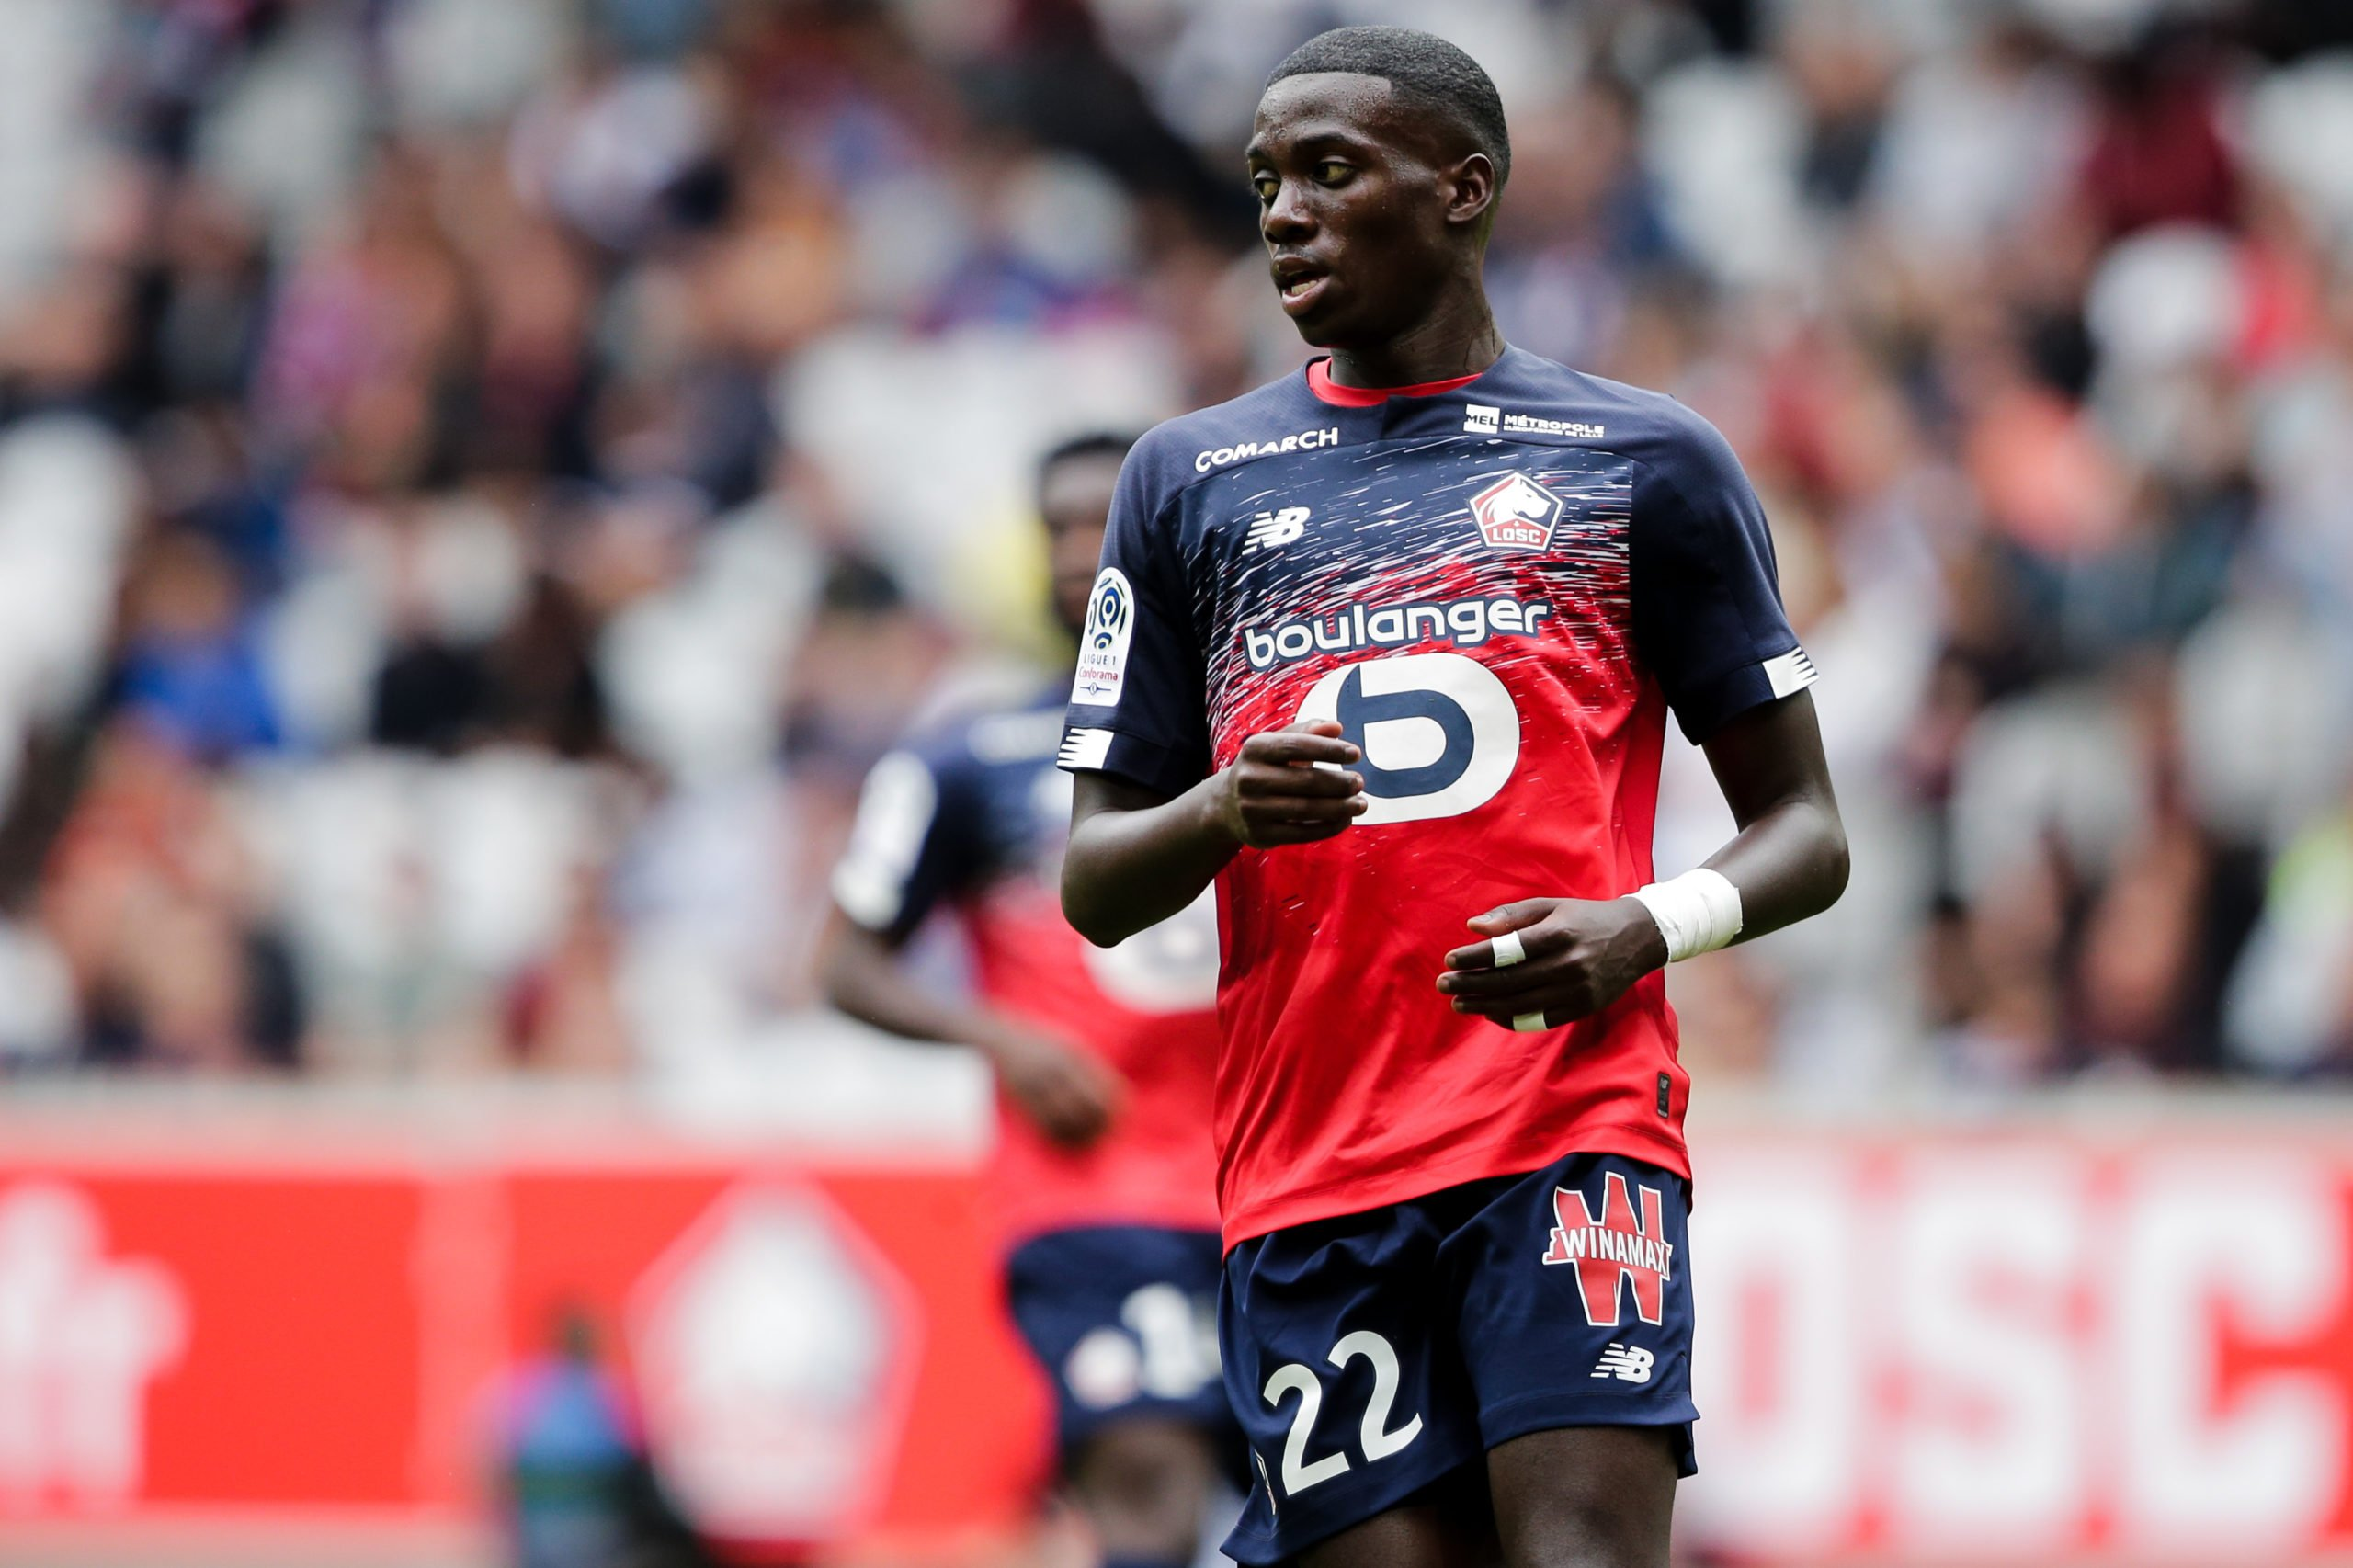 Weah is struggling at Lille